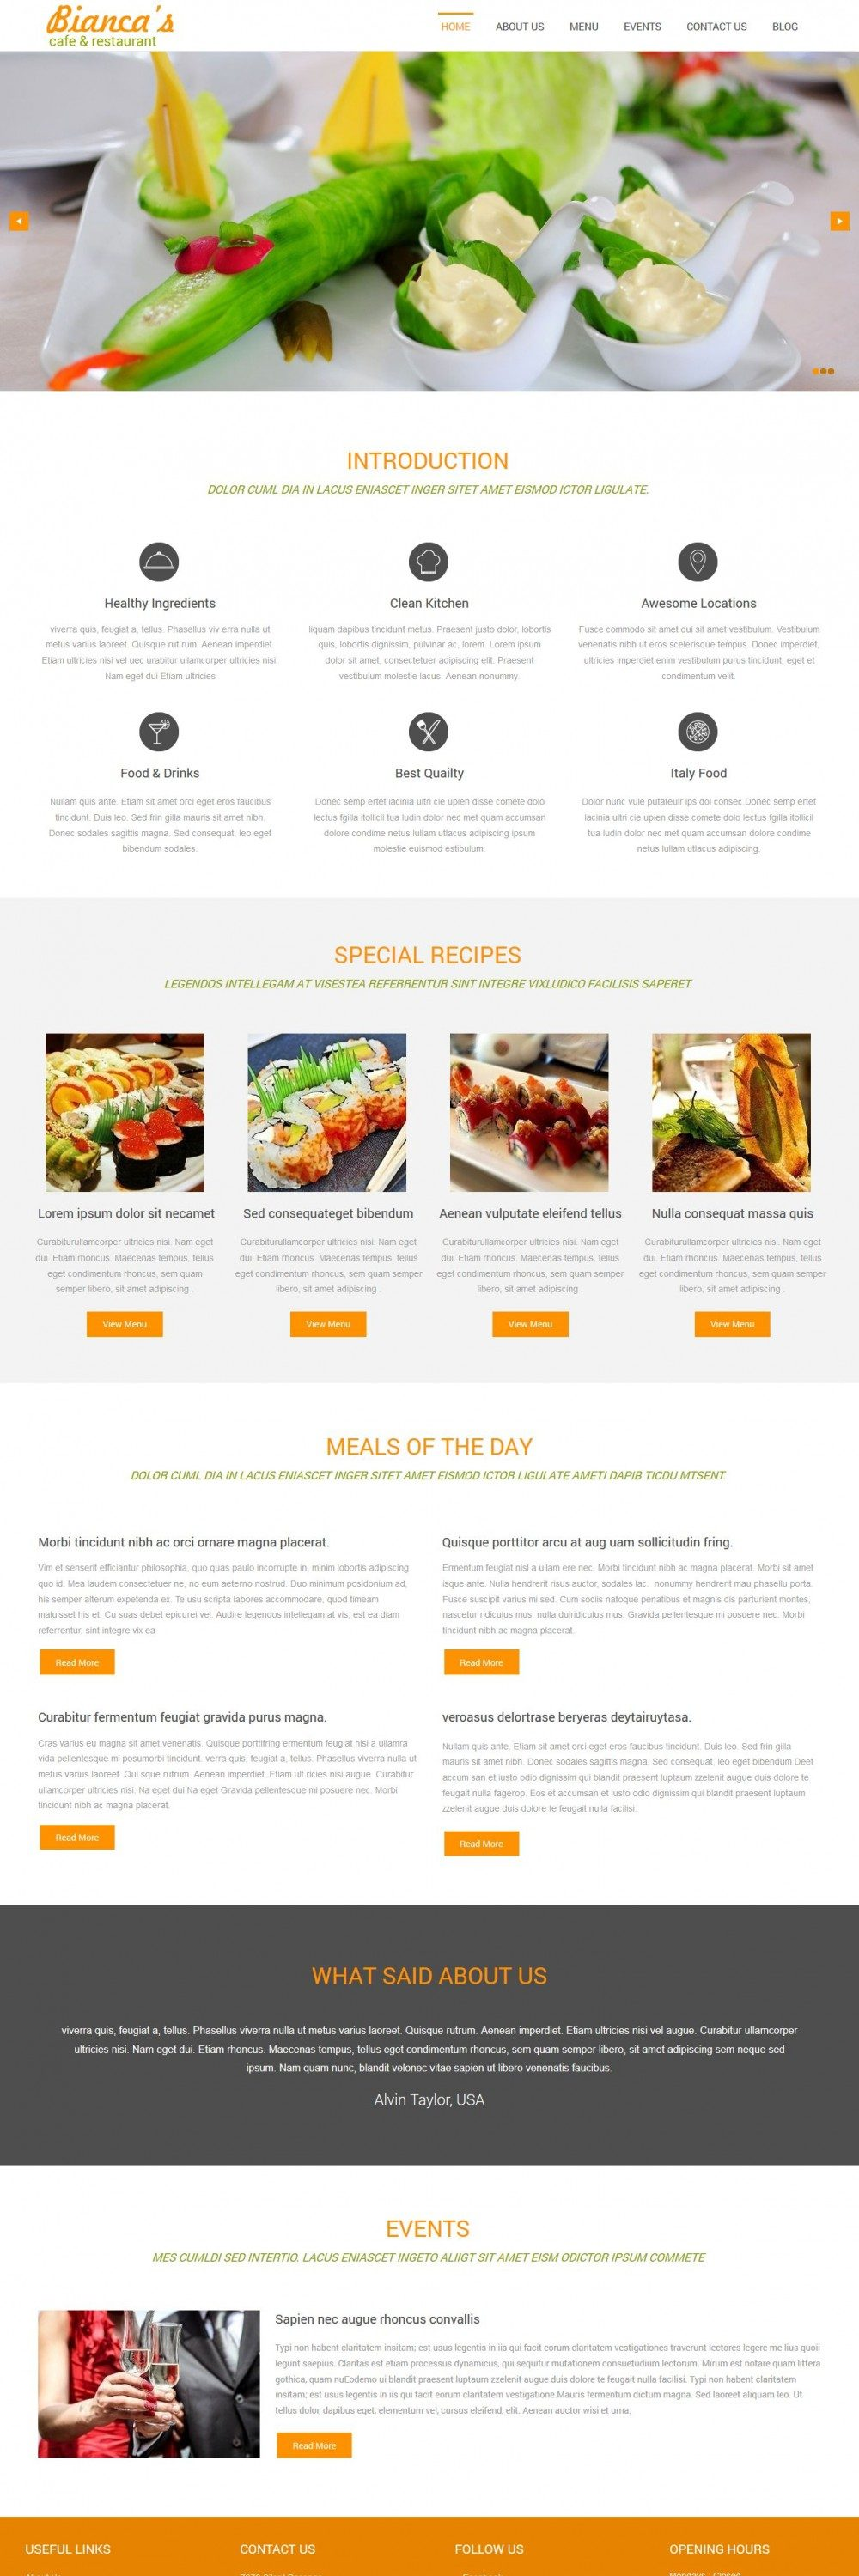 Bianca - Restaurant/Cafe WordPress Theme